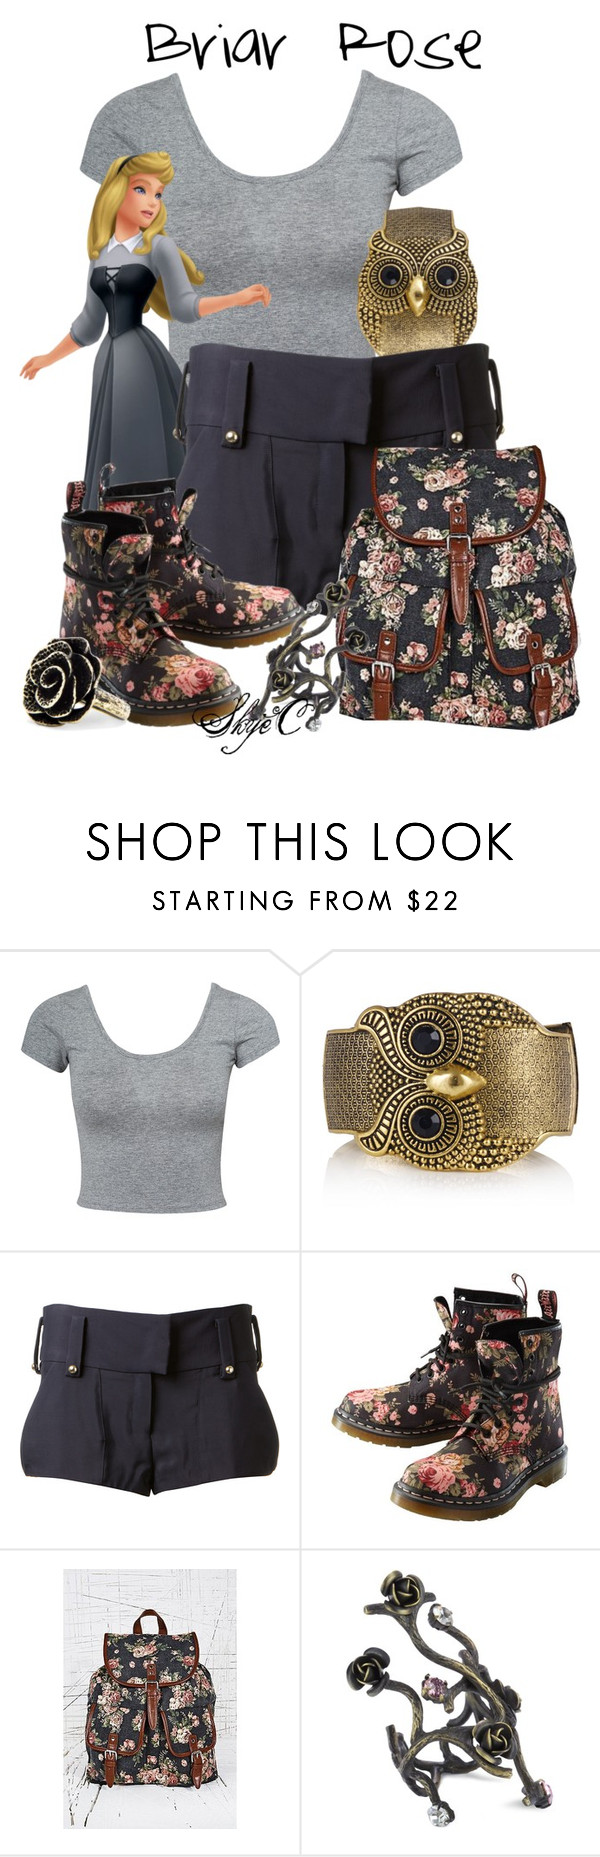 """""""Briar Rose - Spring / Summer - Disney's Sleeping Beauty"""" by rubytyra ❤ liked on Polyvore featuring Estradeur, Anthony Vaccarello, Dr. Martens, Joanna Laura Constantine, MANGO, Summer, Spring, disney, sleepingbeauty and disneybound"""